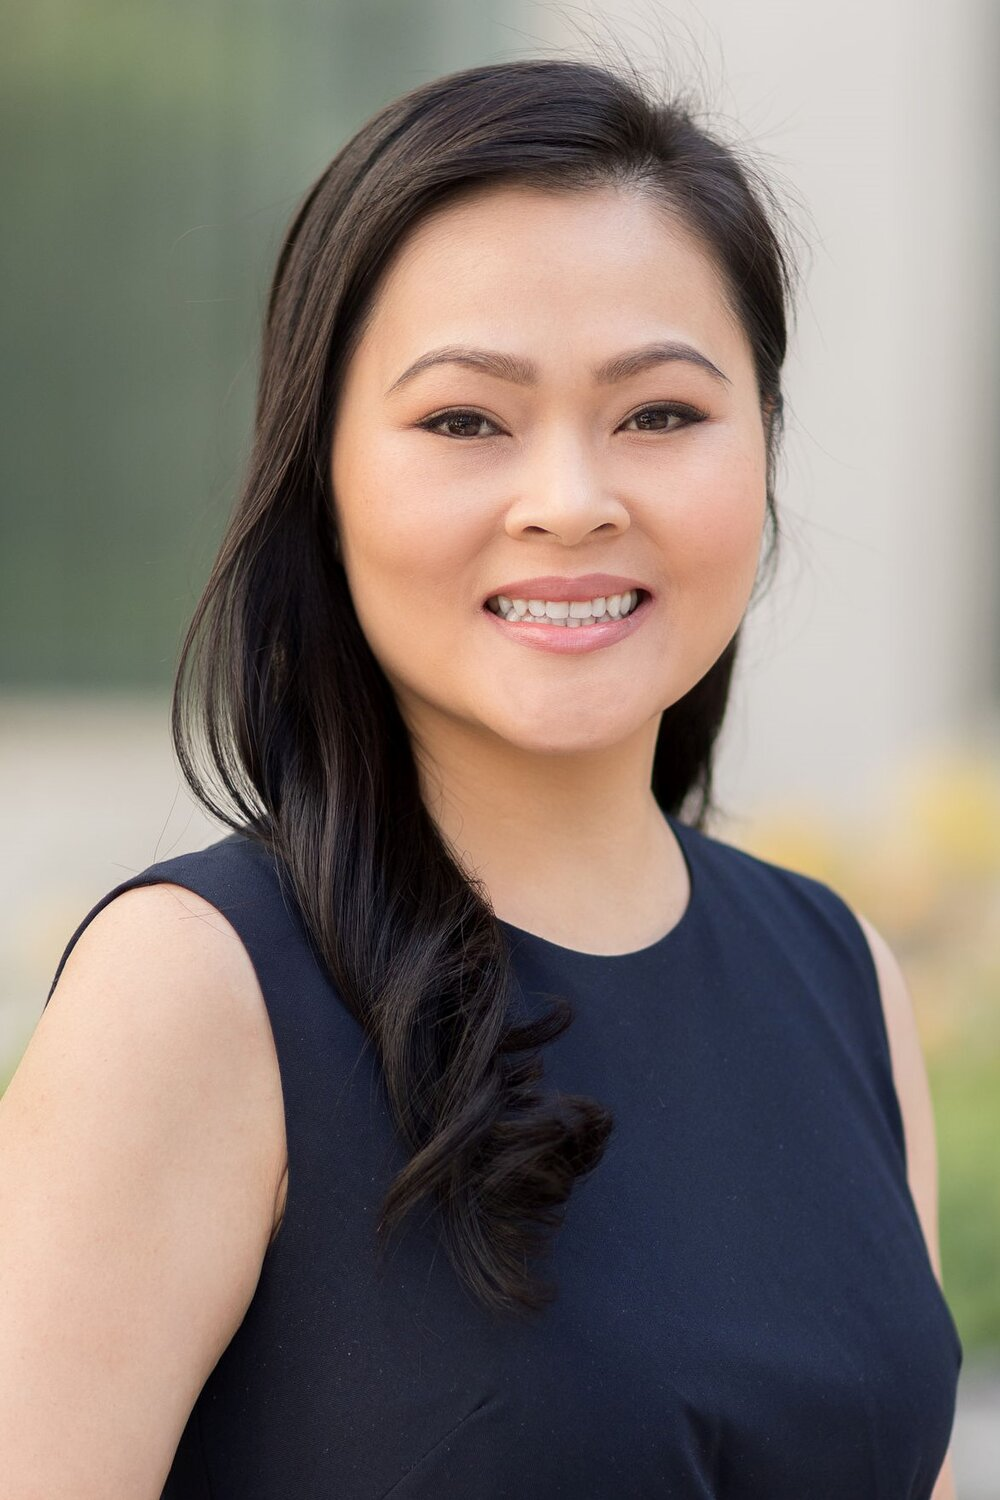 cindy-nguyen-rosemead-estate-planning-attorney-amity-law-group